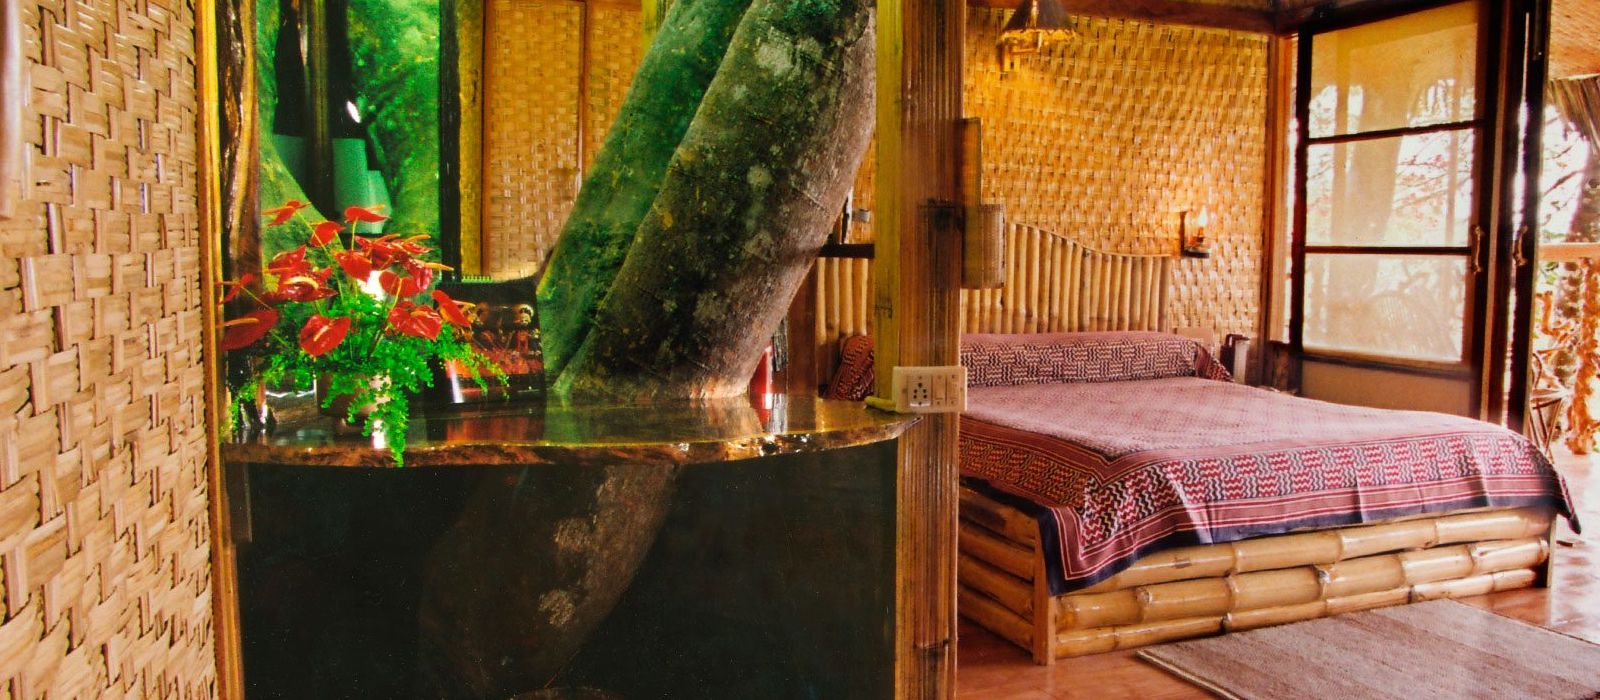 Hotel Tranquil South India